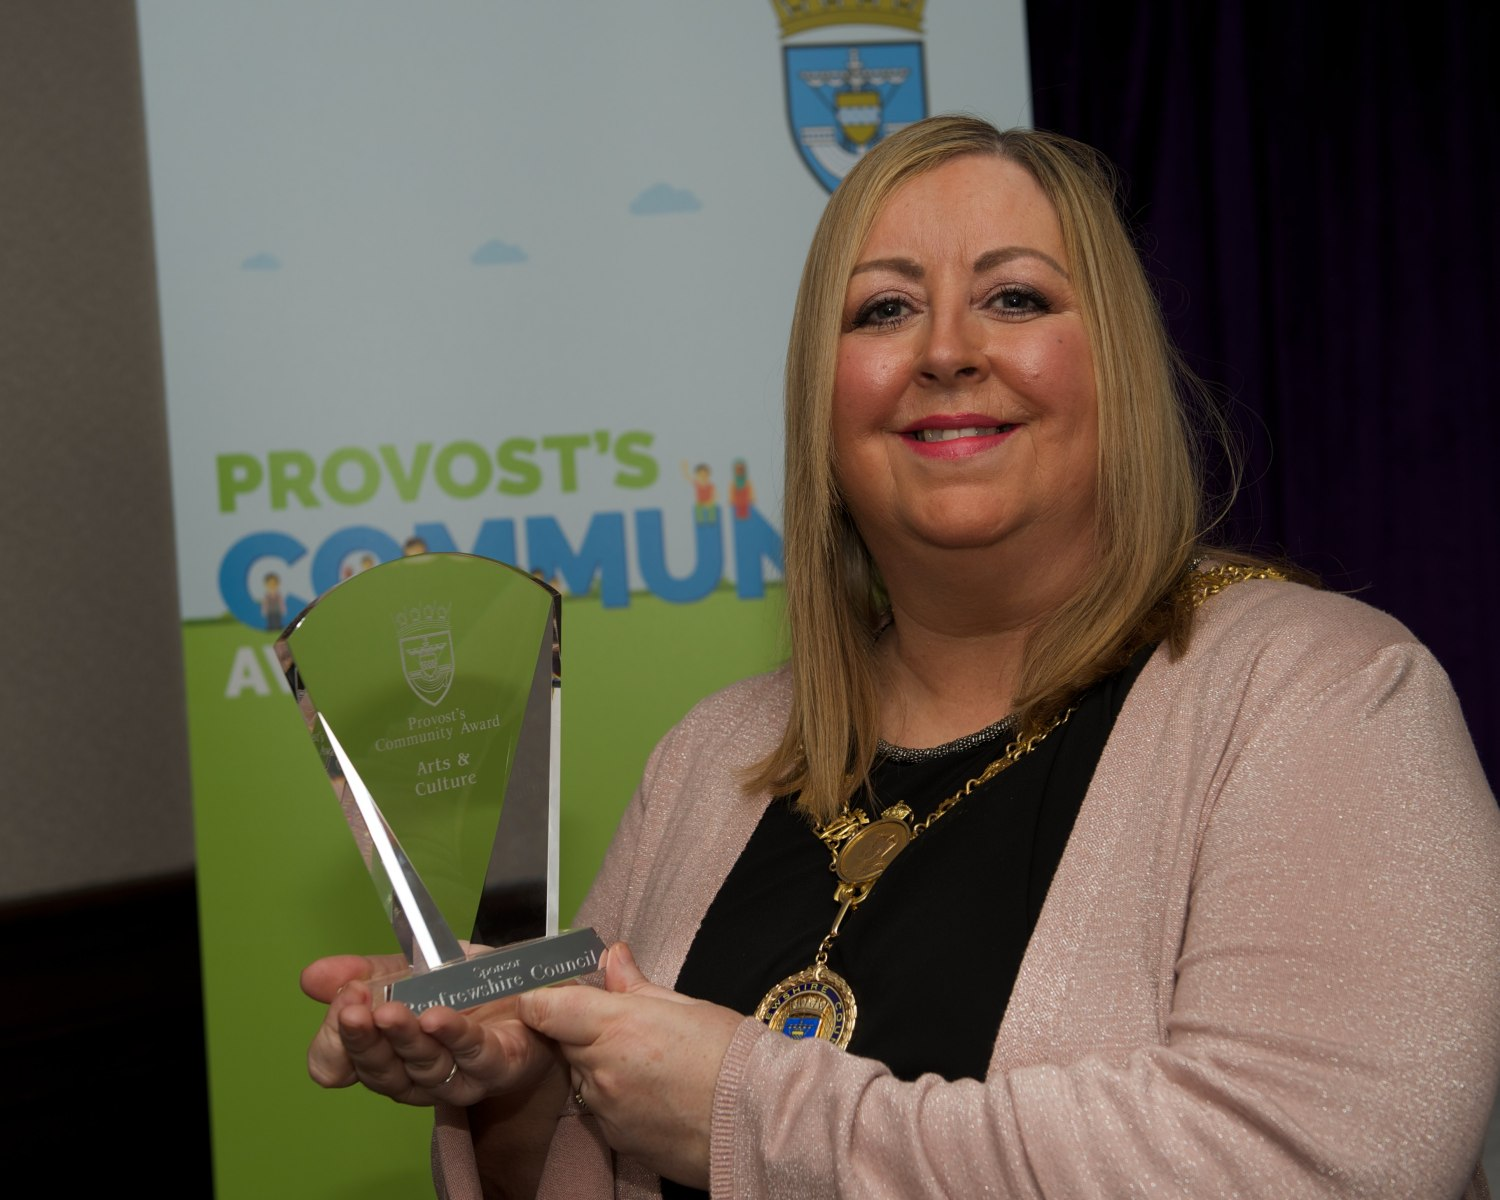 Renfrewshire Council Provost awards 9.3.18